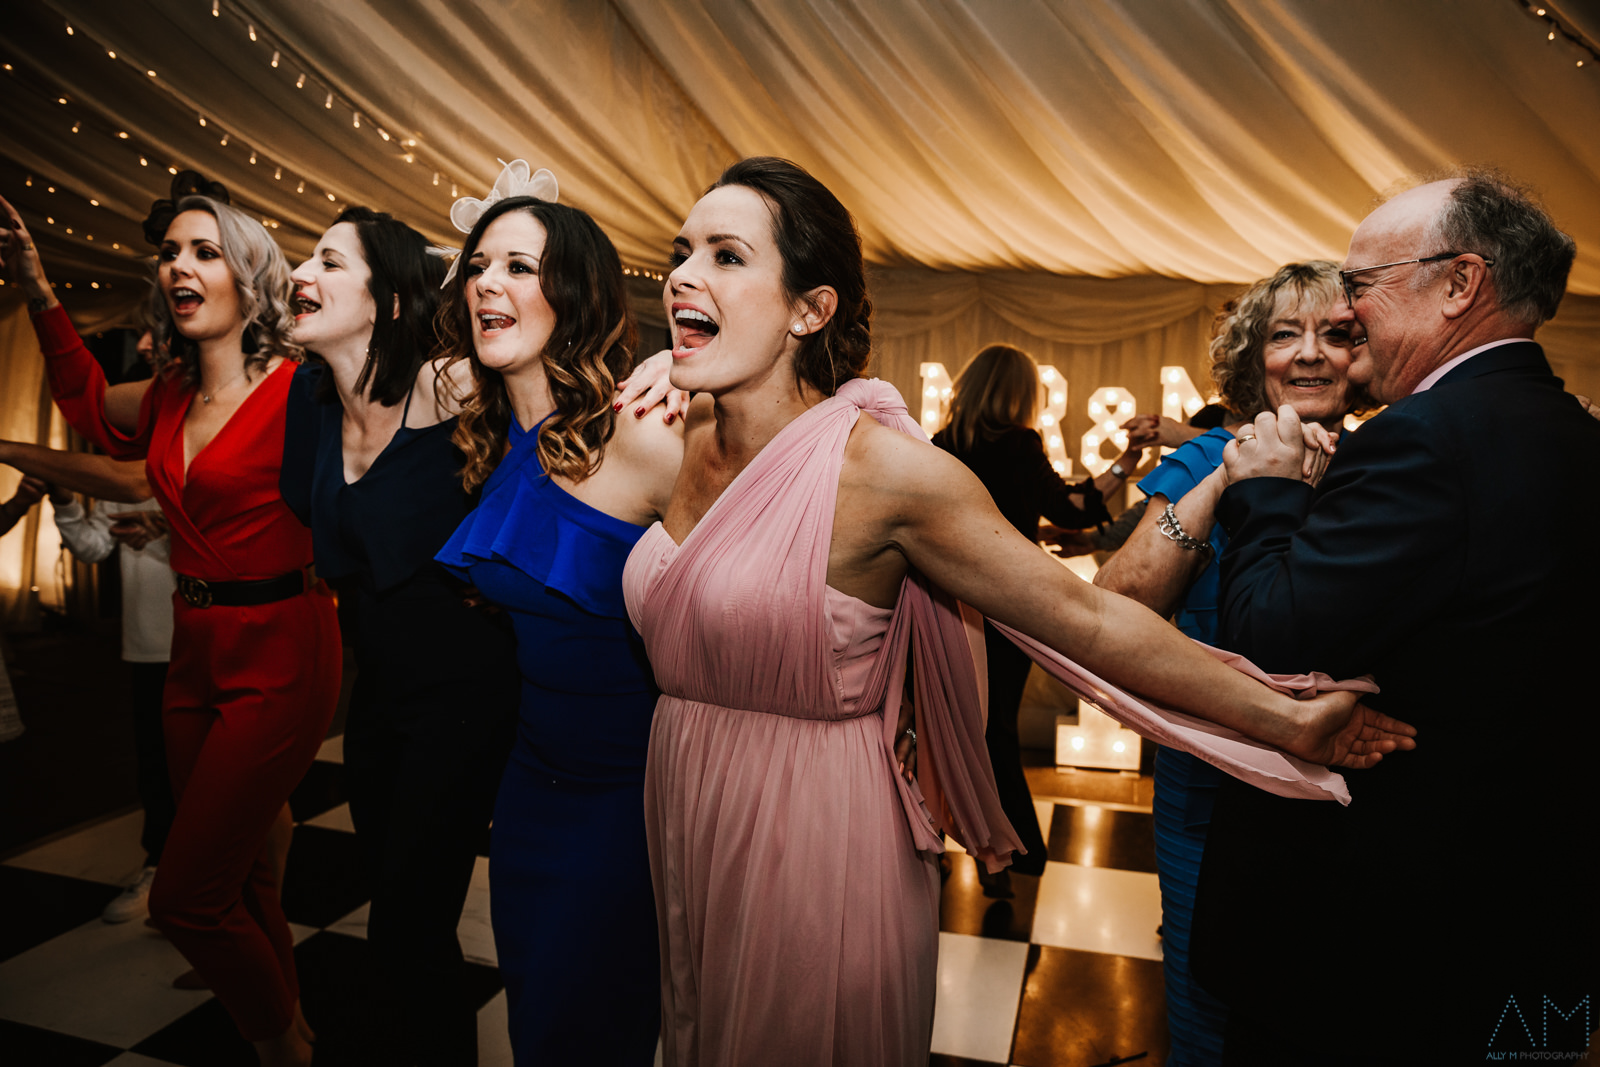 Wedding guests on the dance floor at the inn at Whitewell